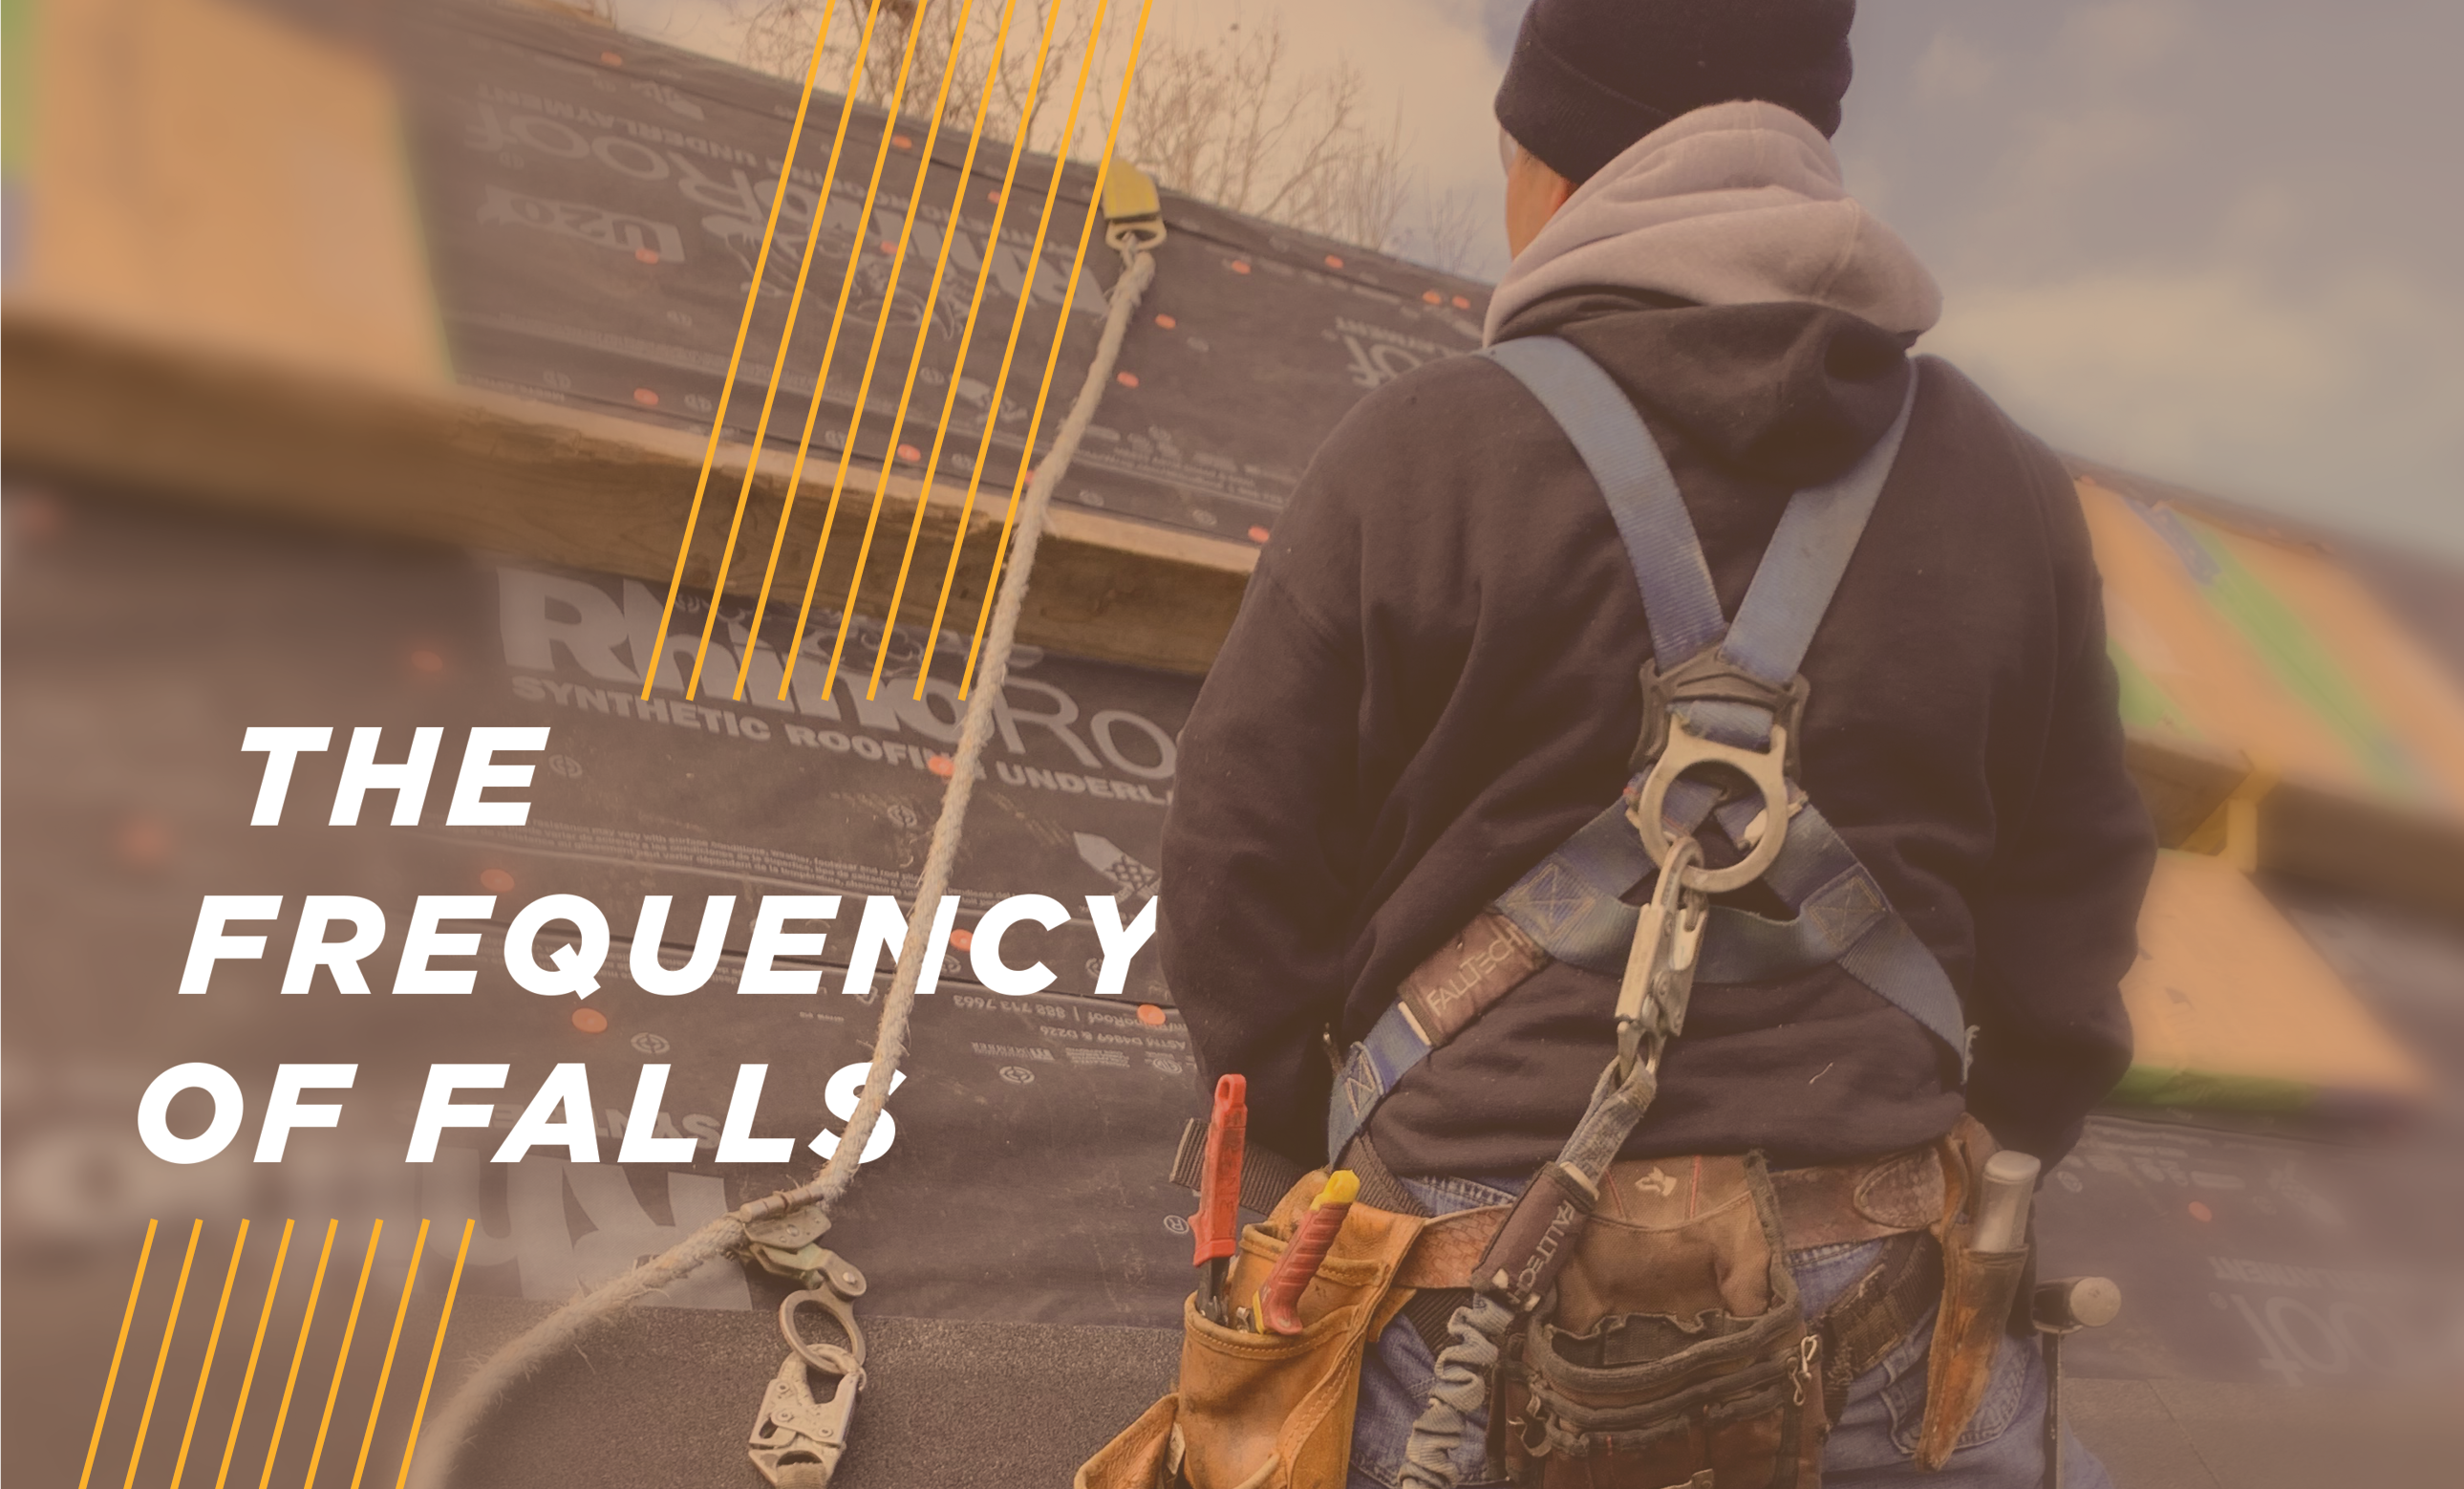 The frequency of falls - Despite safety measures, fatal falls continue to plague the roofing industry